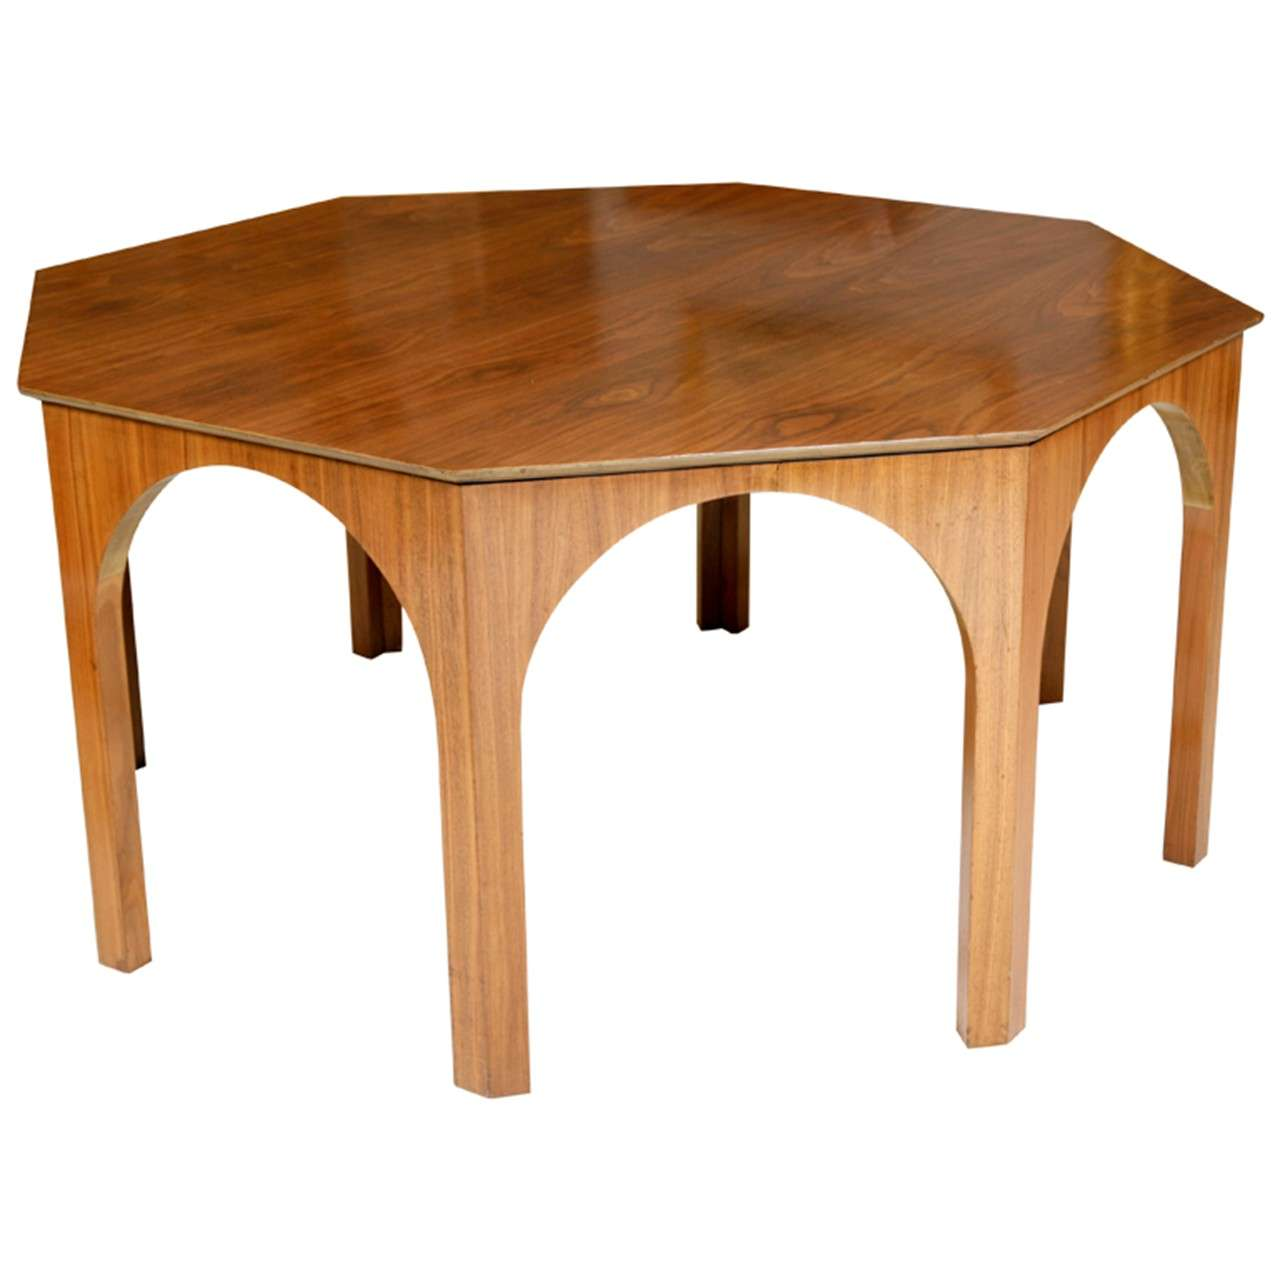 Octagonal dining centre table by t h robsjohn gibbings at for Furniture centre table